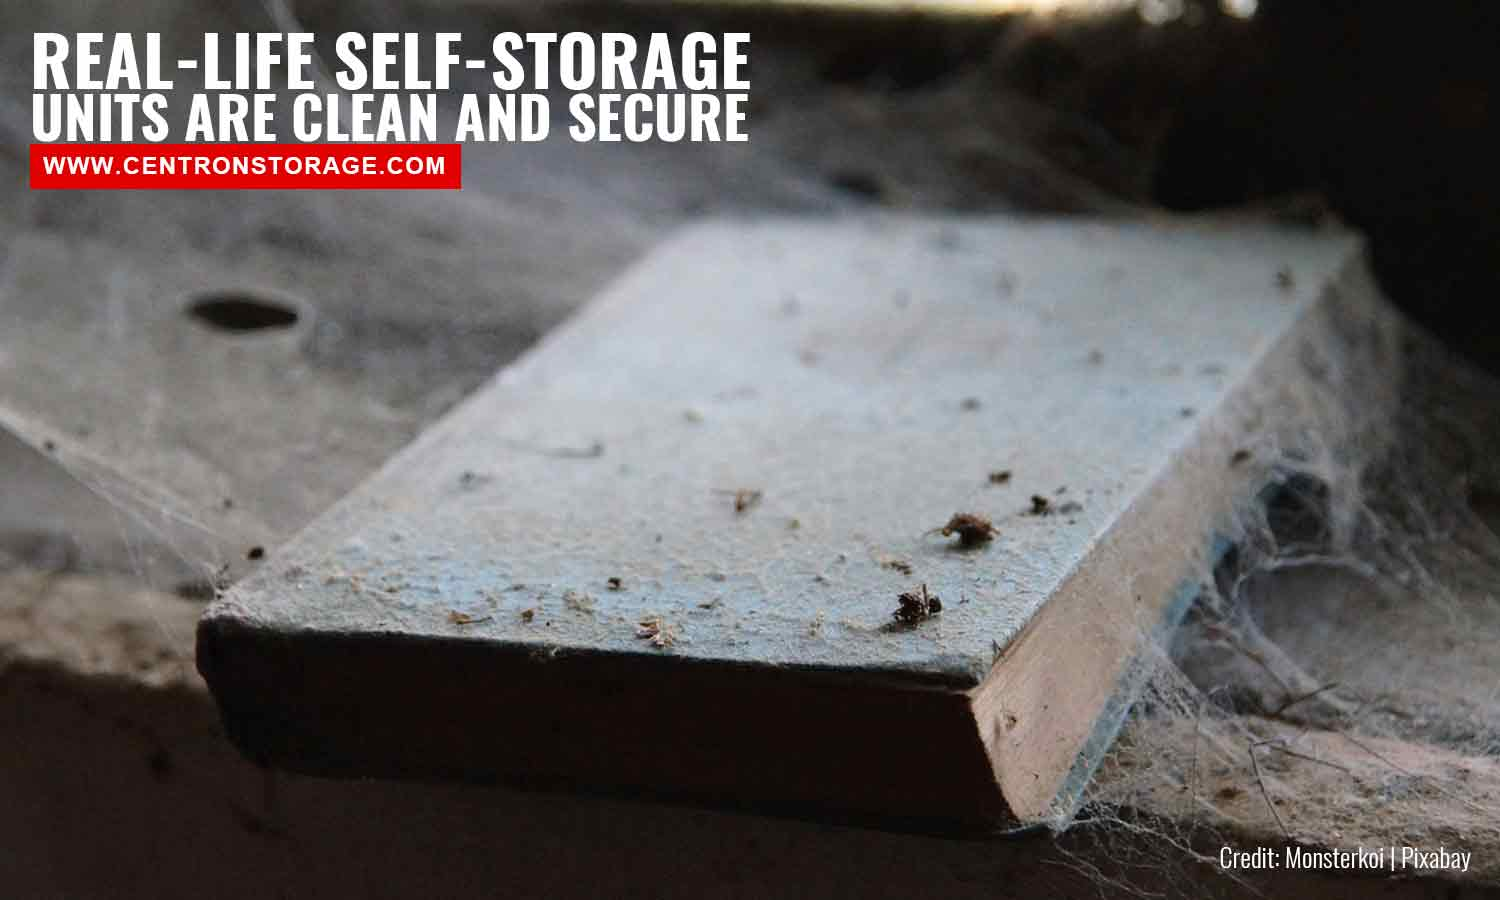 Real-life self-storage units are clean and secure